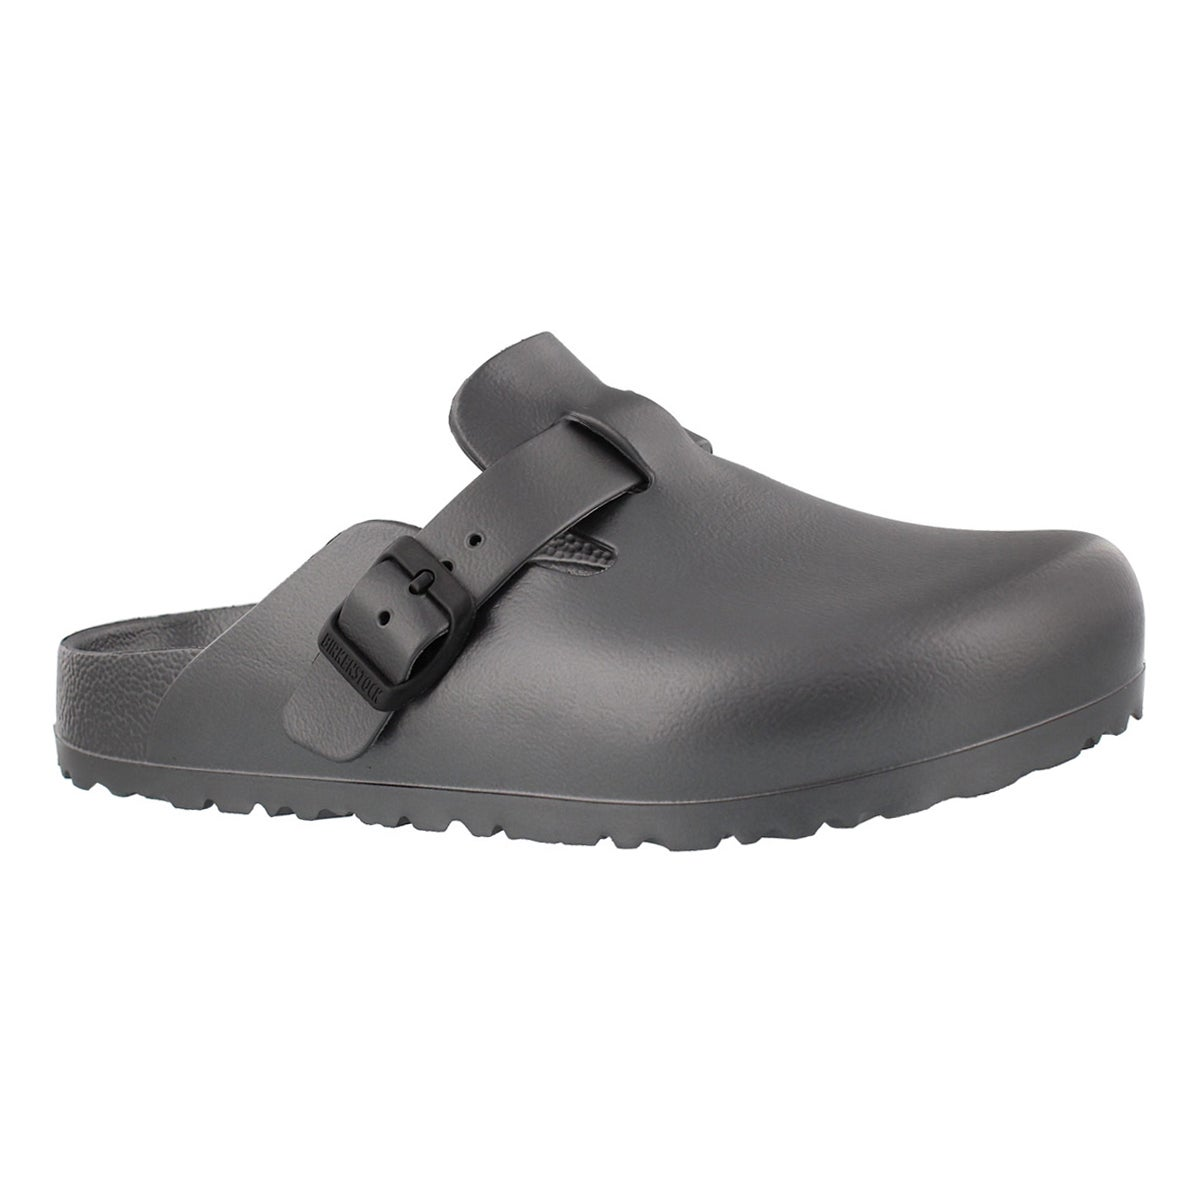 Women's BOSTON metallic anth EVA casual clogs